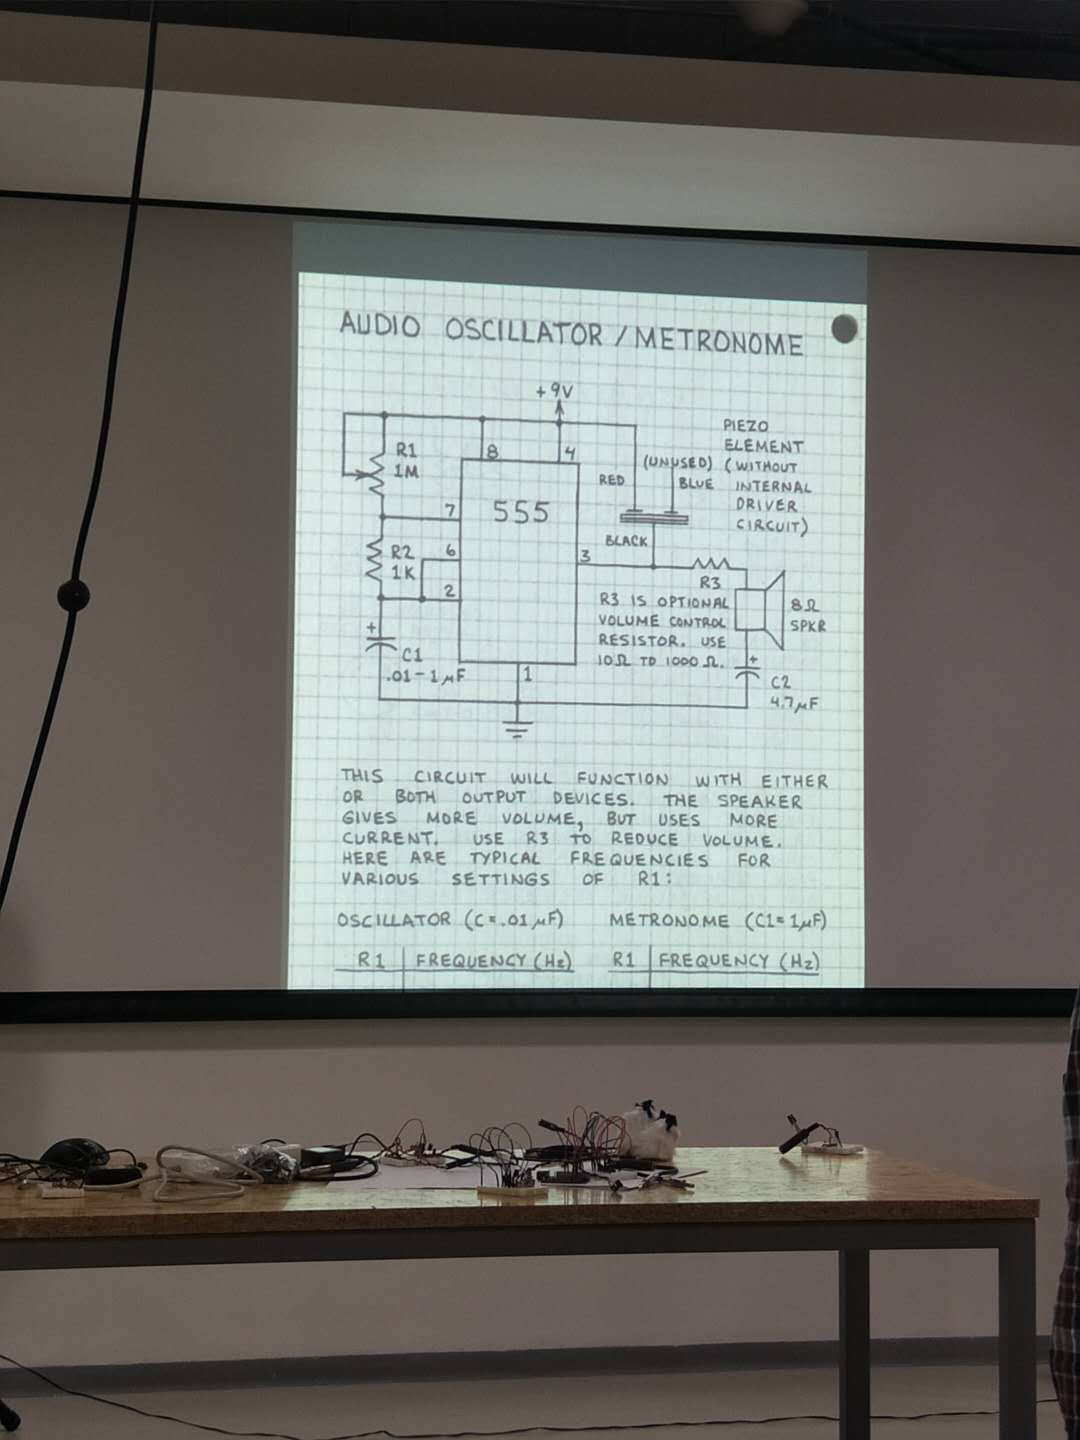 Imx Nime Week 2 In Class 555 Timer Performance 1ronan Oscillator This Is The Sketch Of Circuit